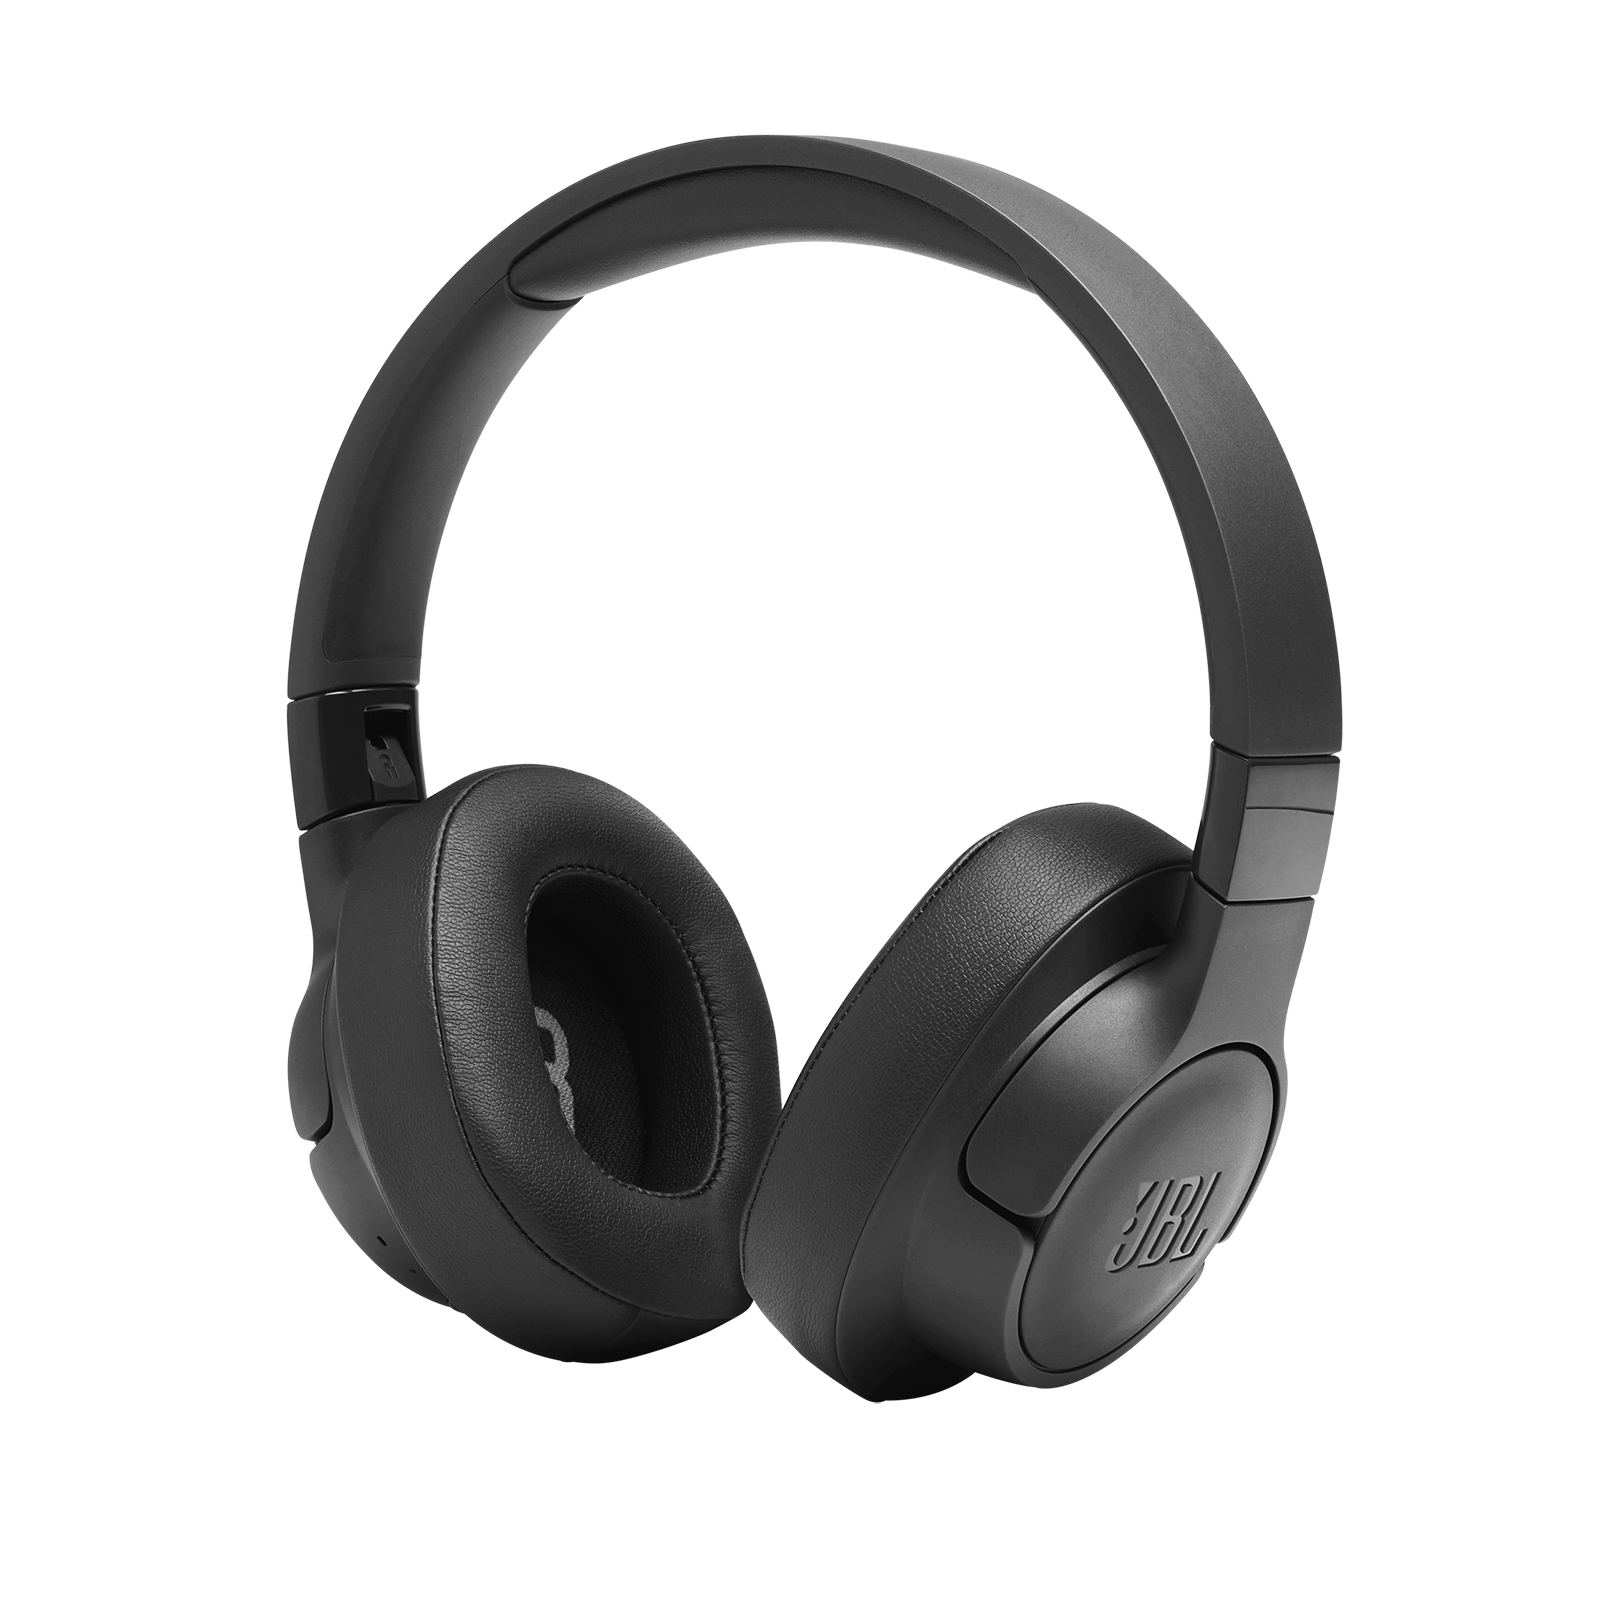 JBL TUNE 700BT - Black - Wireless Over-Ear Headphones - Detailshot 6